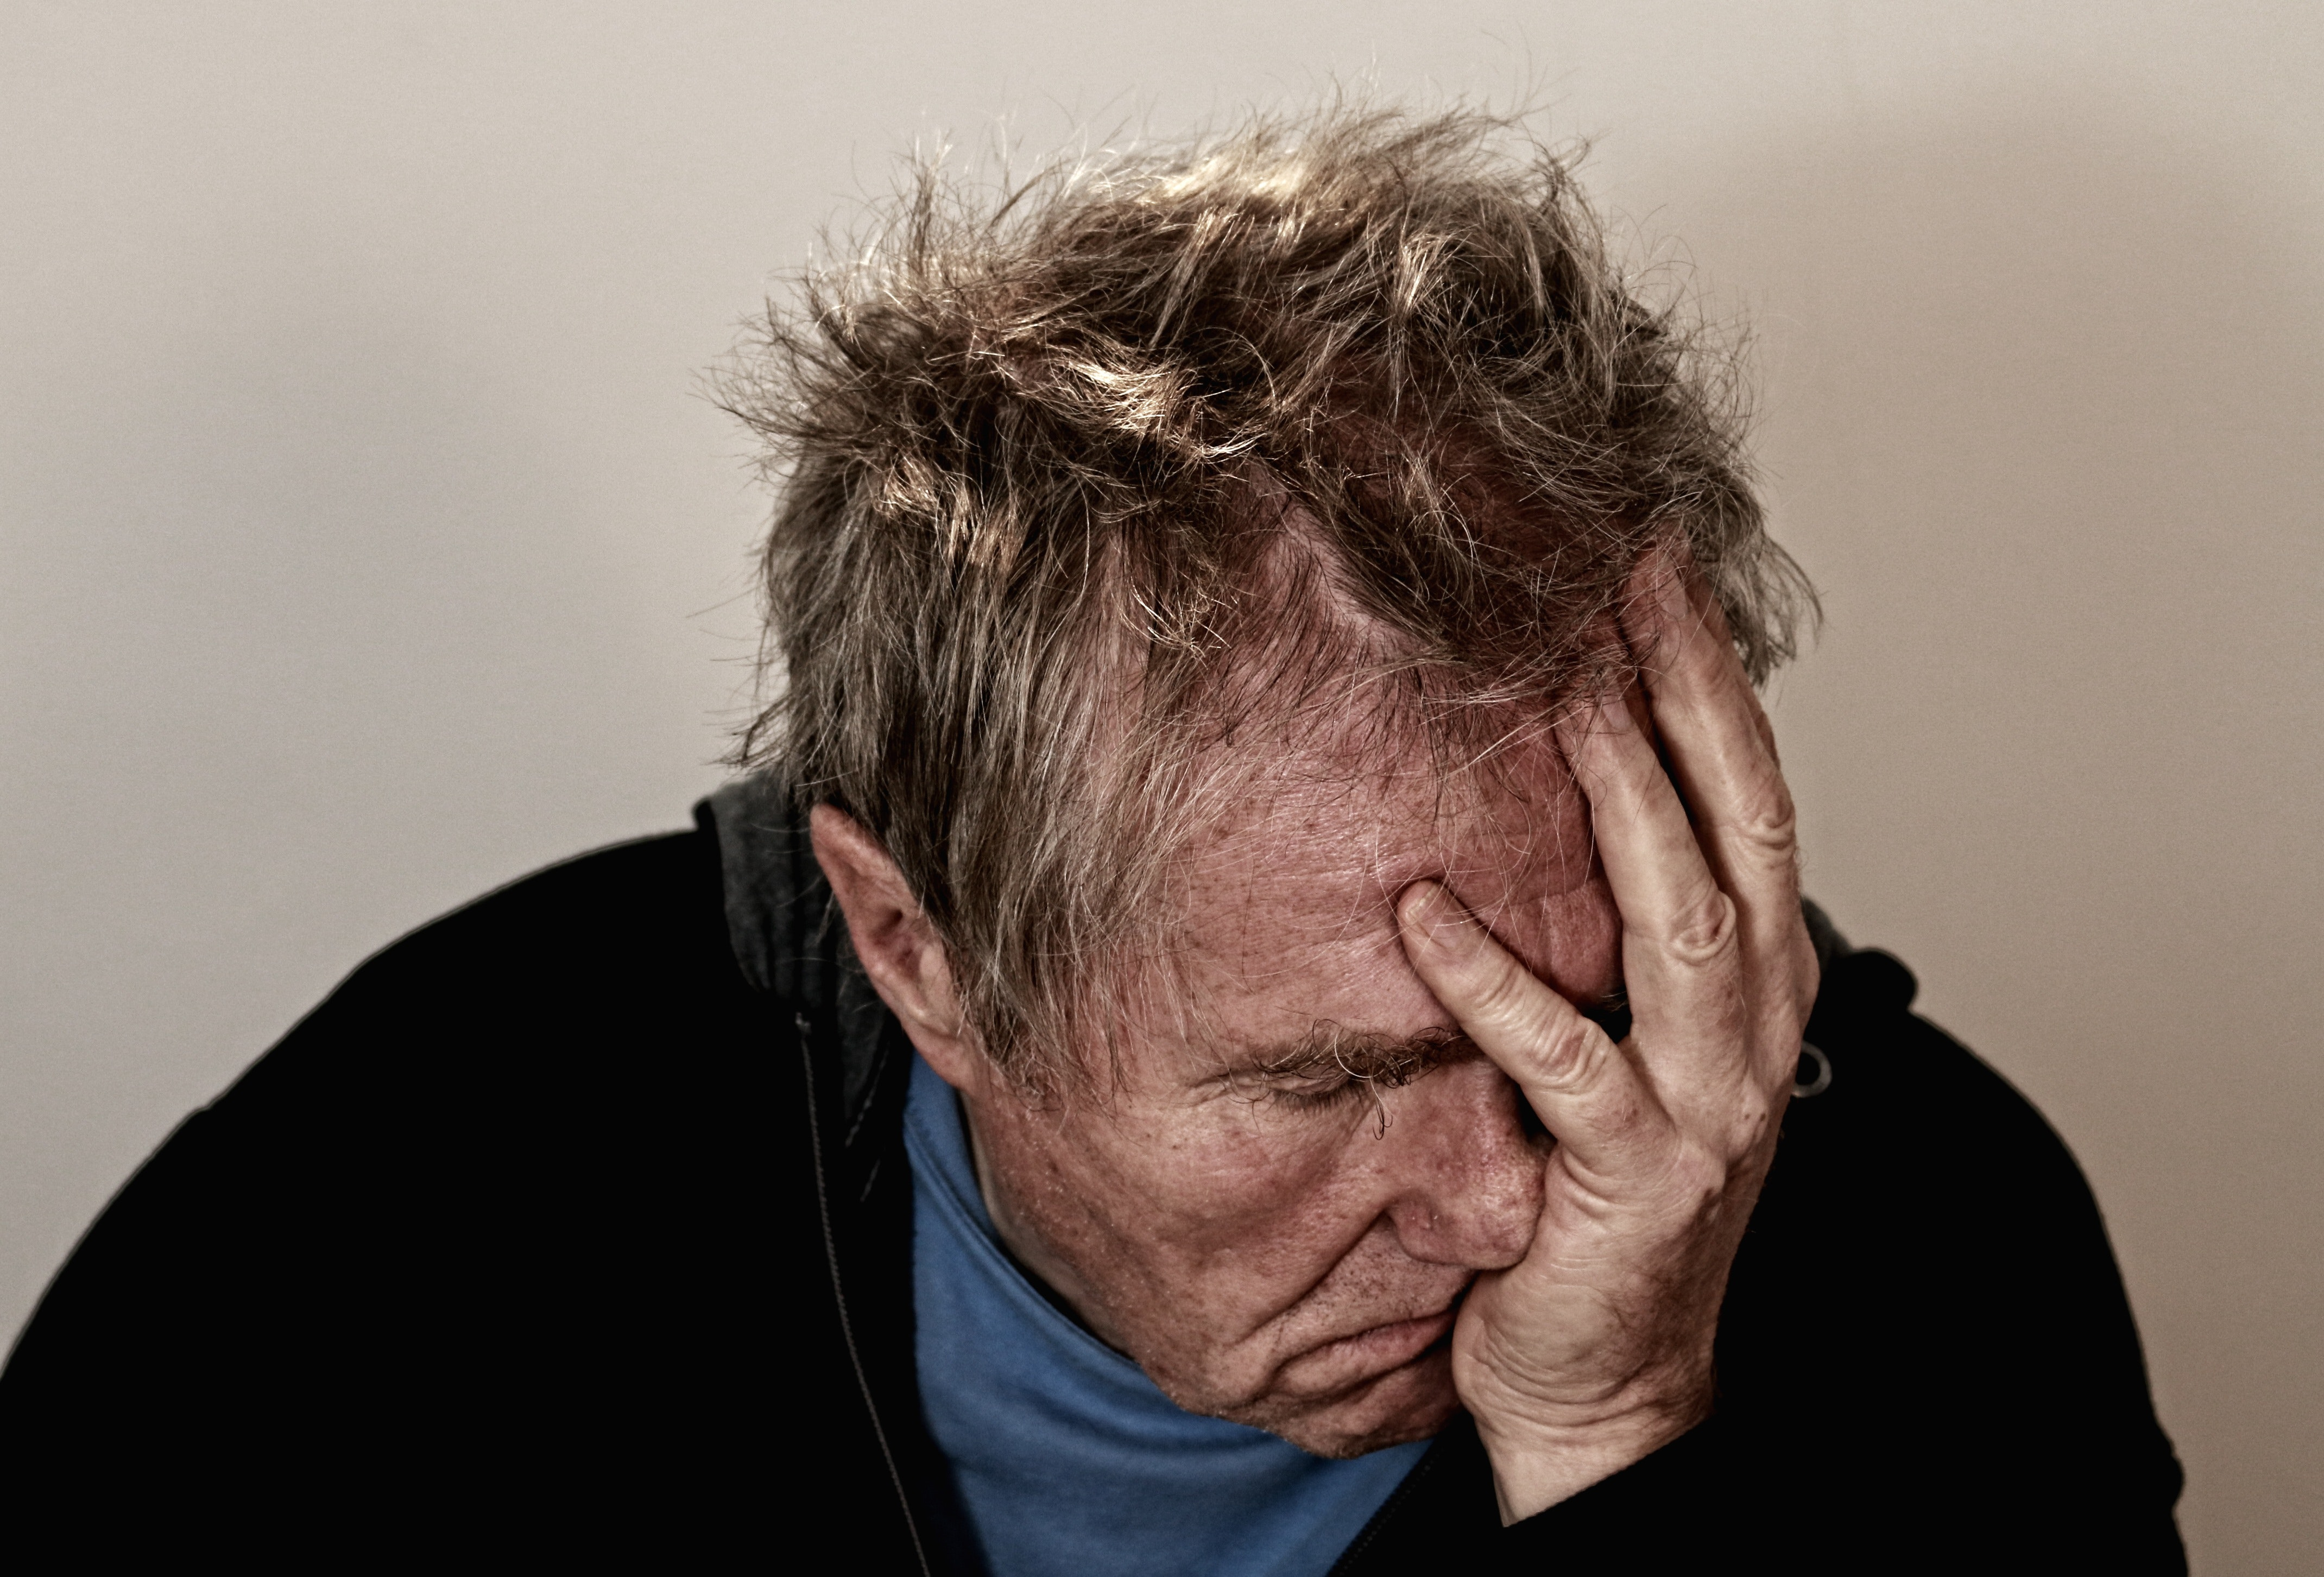 Migraine symptoms – Everything About Migraine Headache